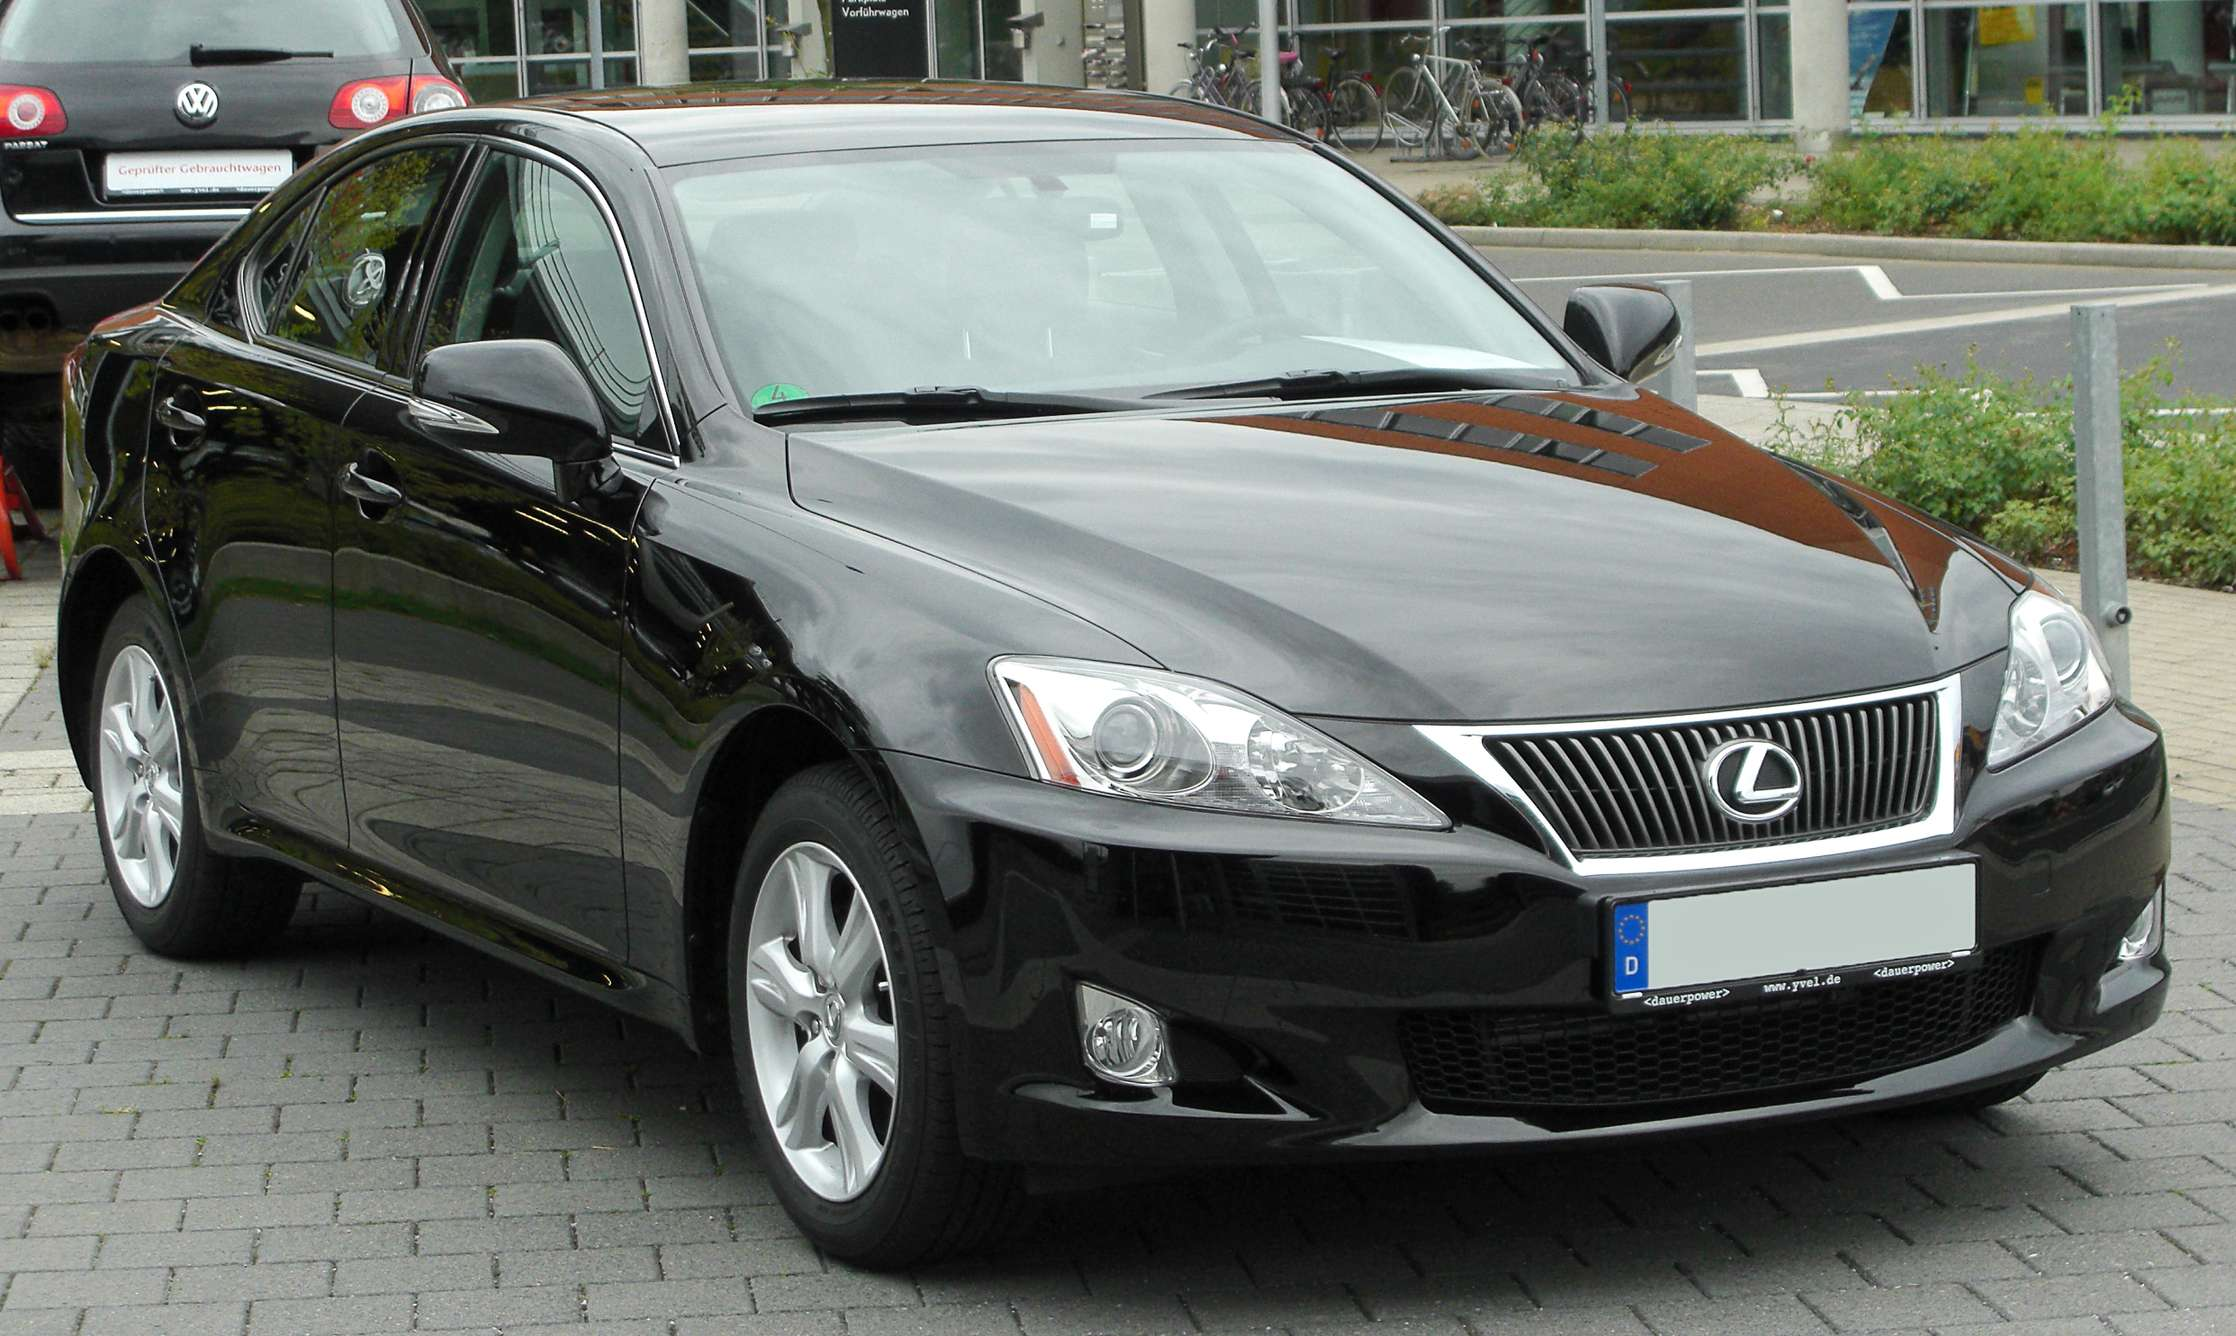 Lexus IS 220d #8047899